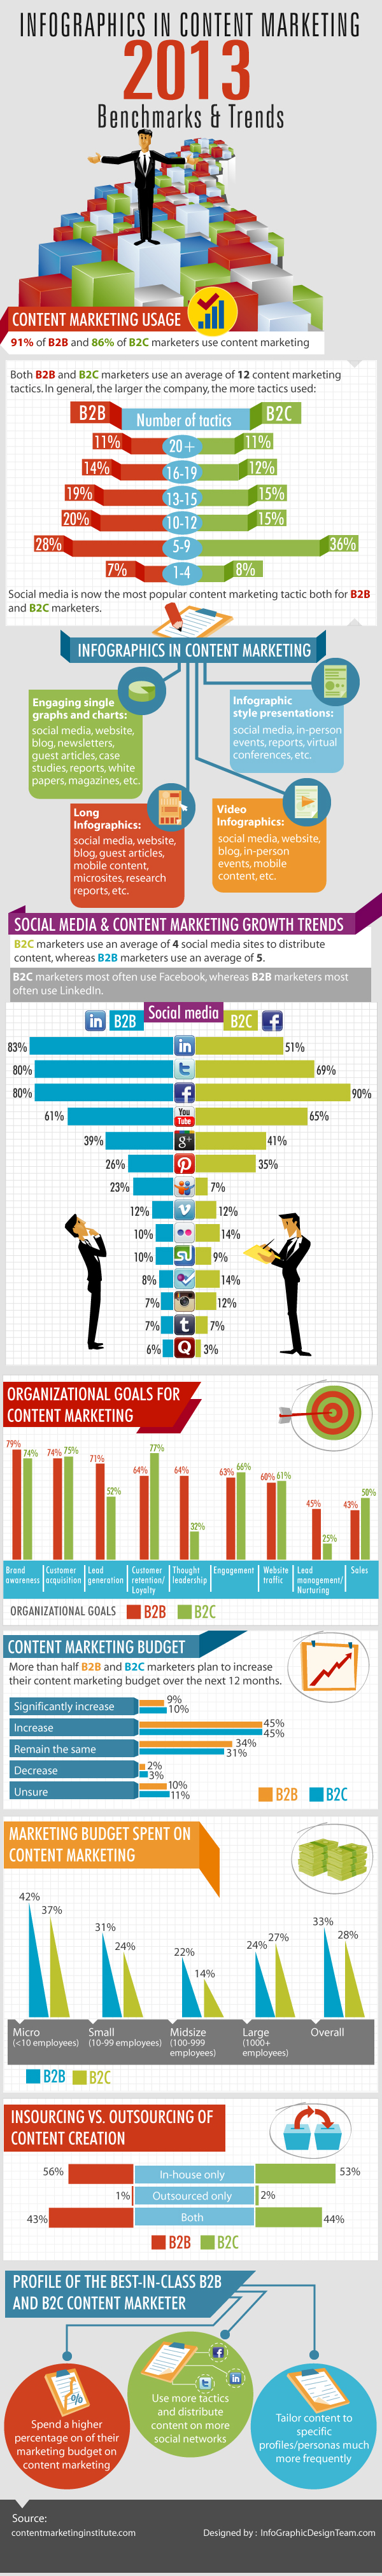 2013 Content Marketing Benchmarks